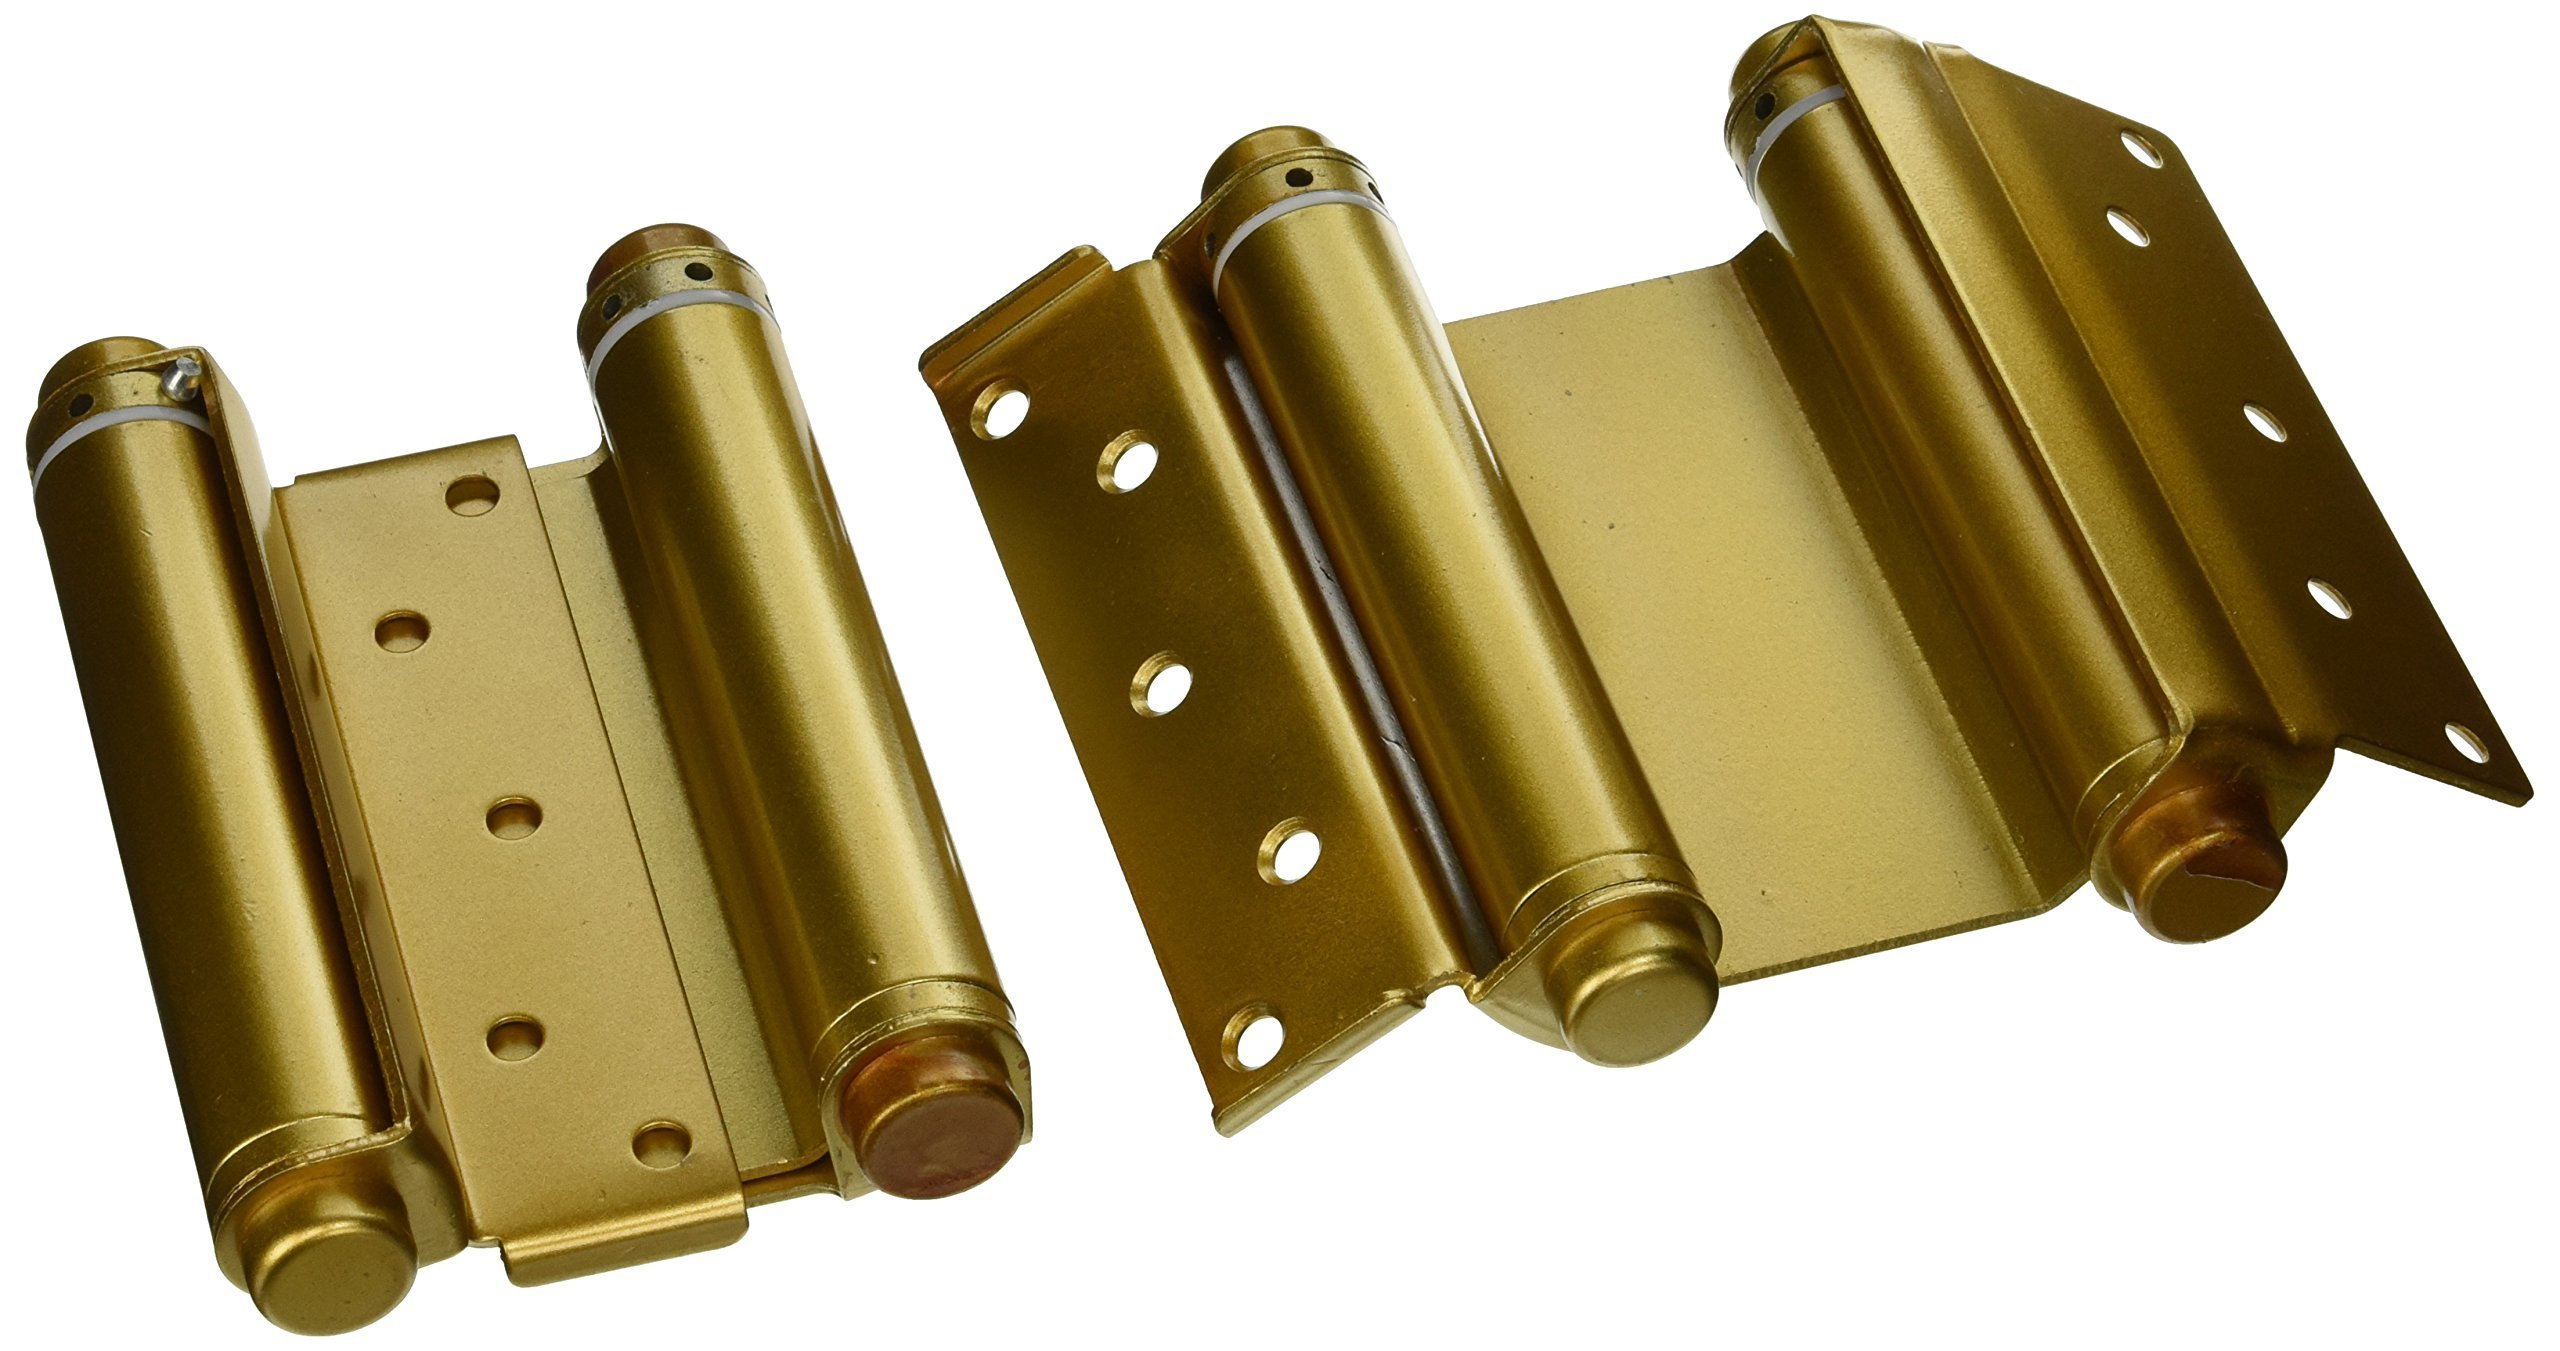 Ultra Hardware 6'' Heavy Duty Brass Double Action Spring Hinges for Door (Set of 2) by Ultra Hardware